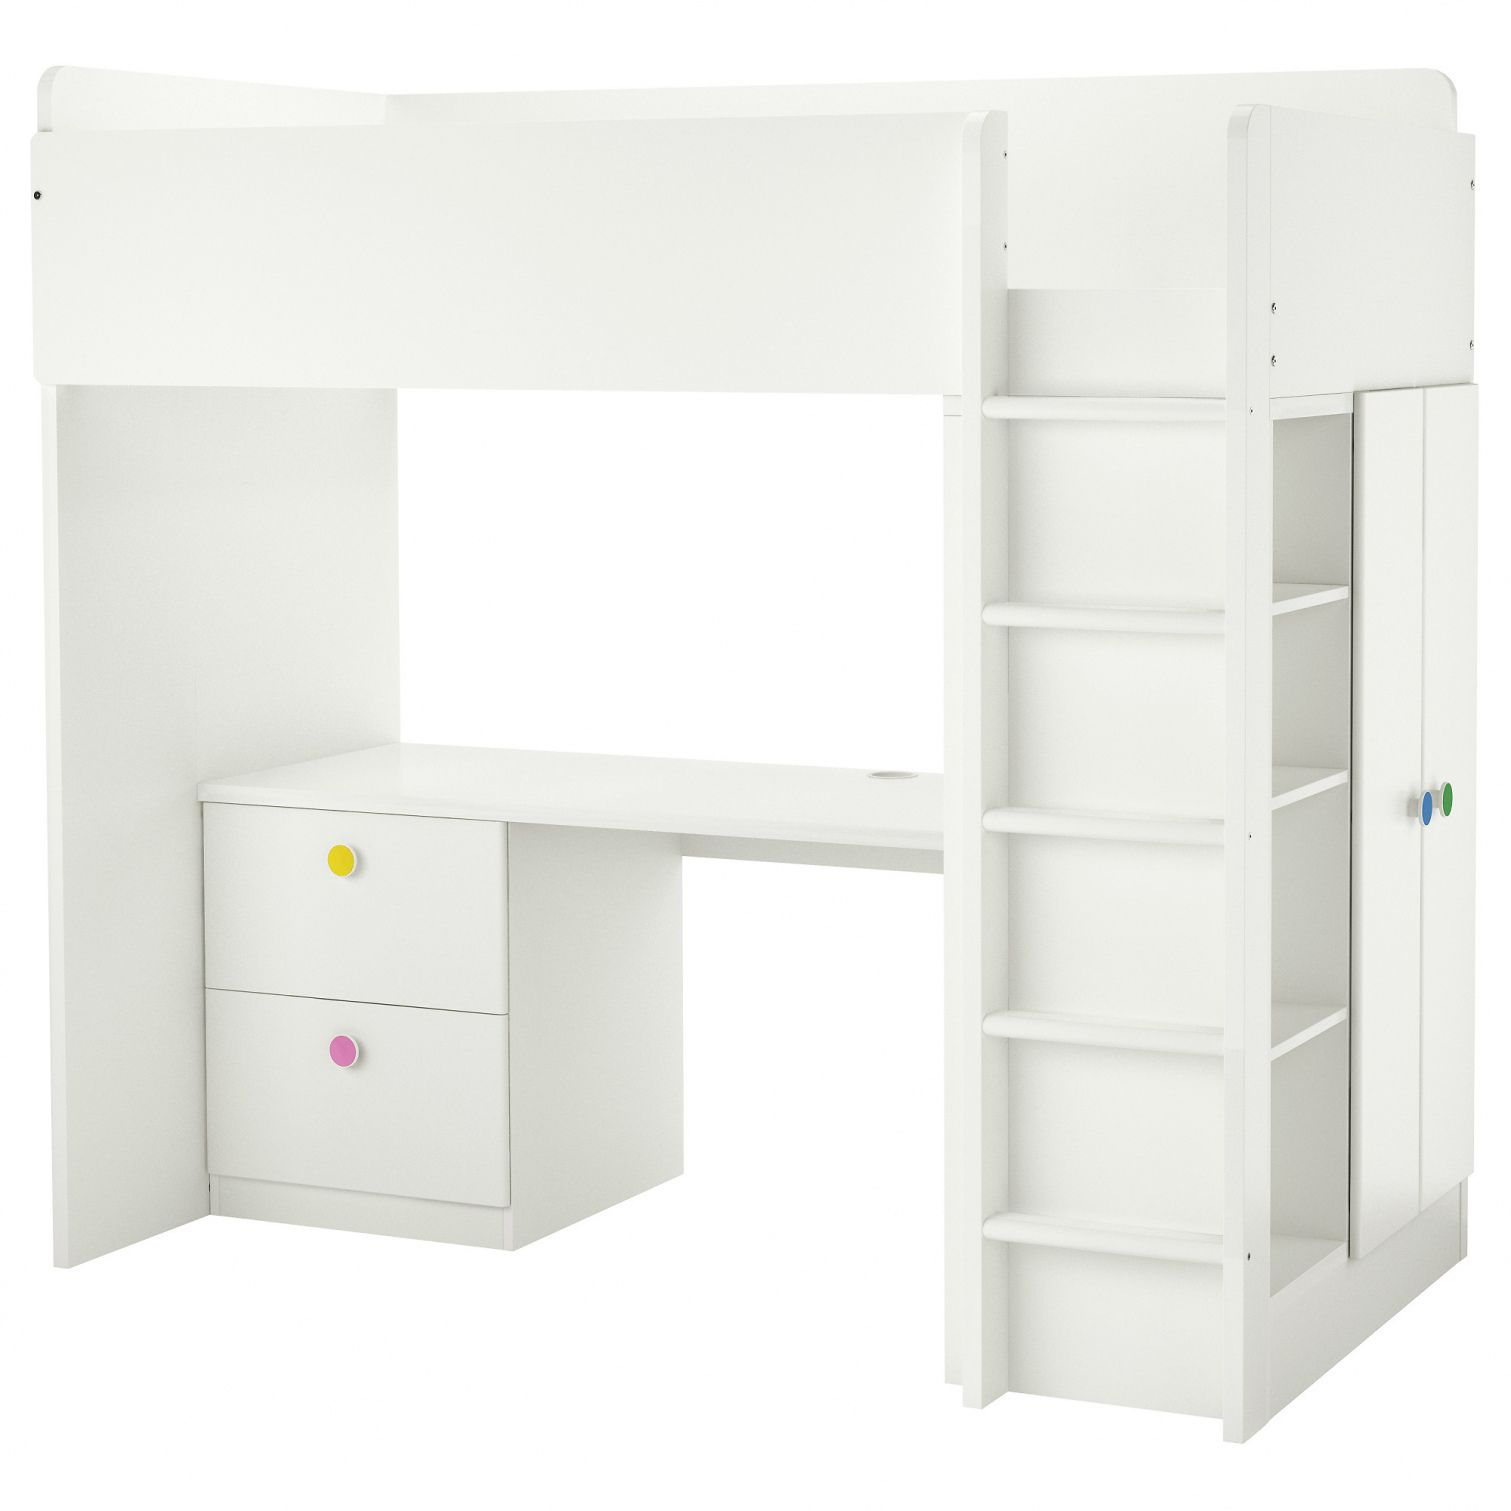 Ikea Kids Bunk Bed  Lowes Paint Colors Interior Check